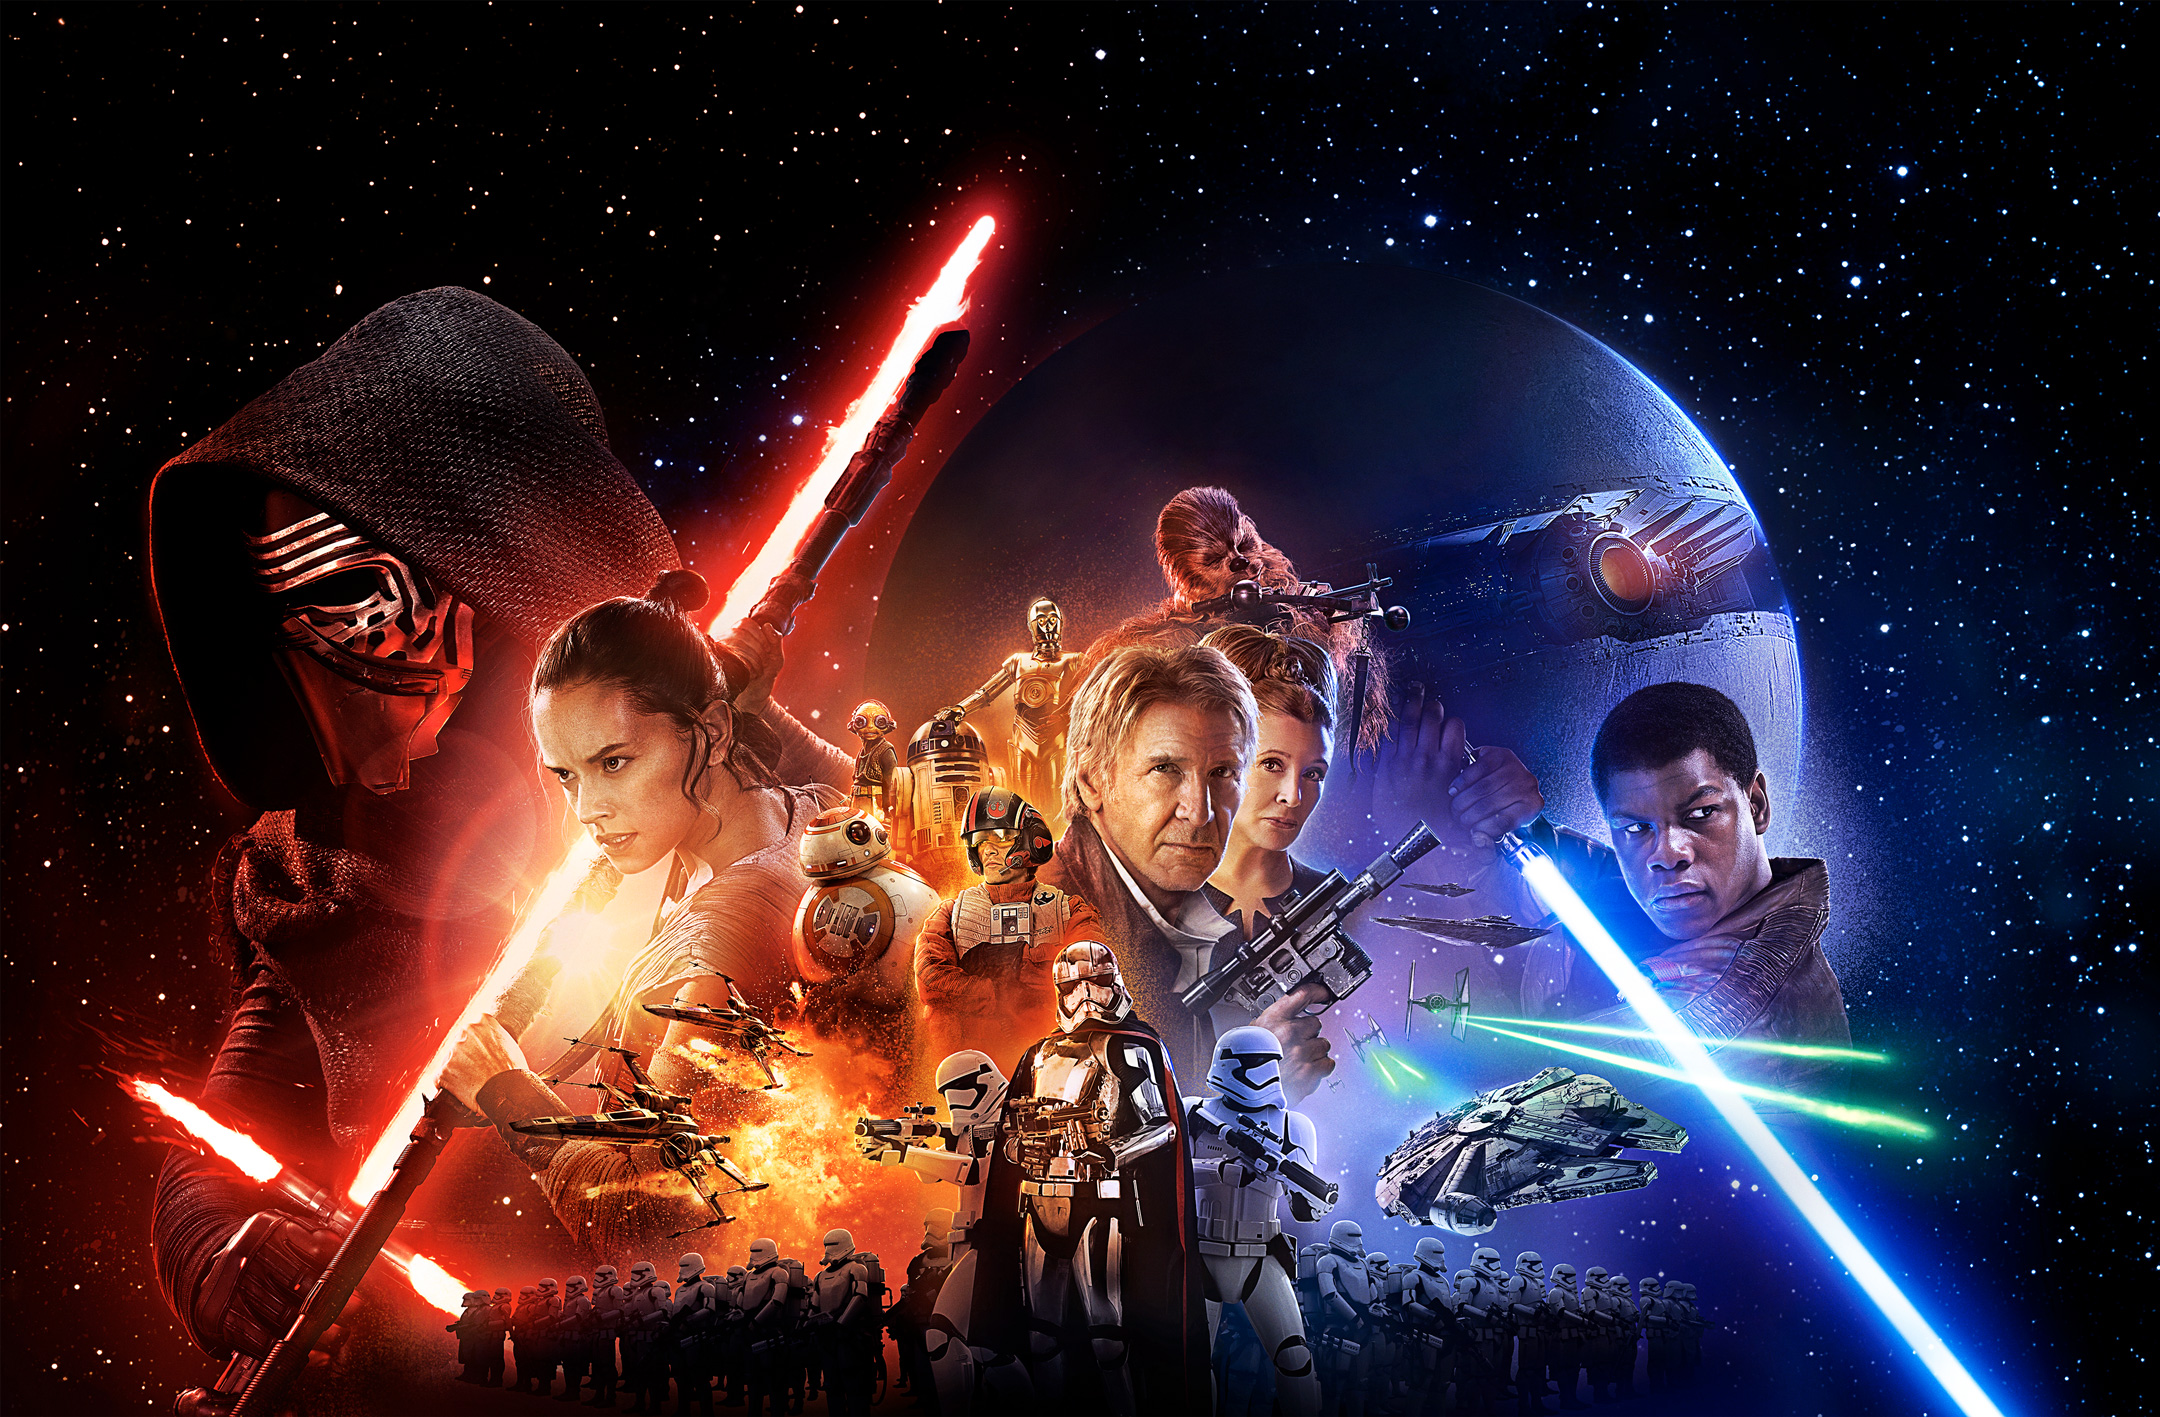 Star Wars O Despertar Da Forca Star Wars The Force Awakens